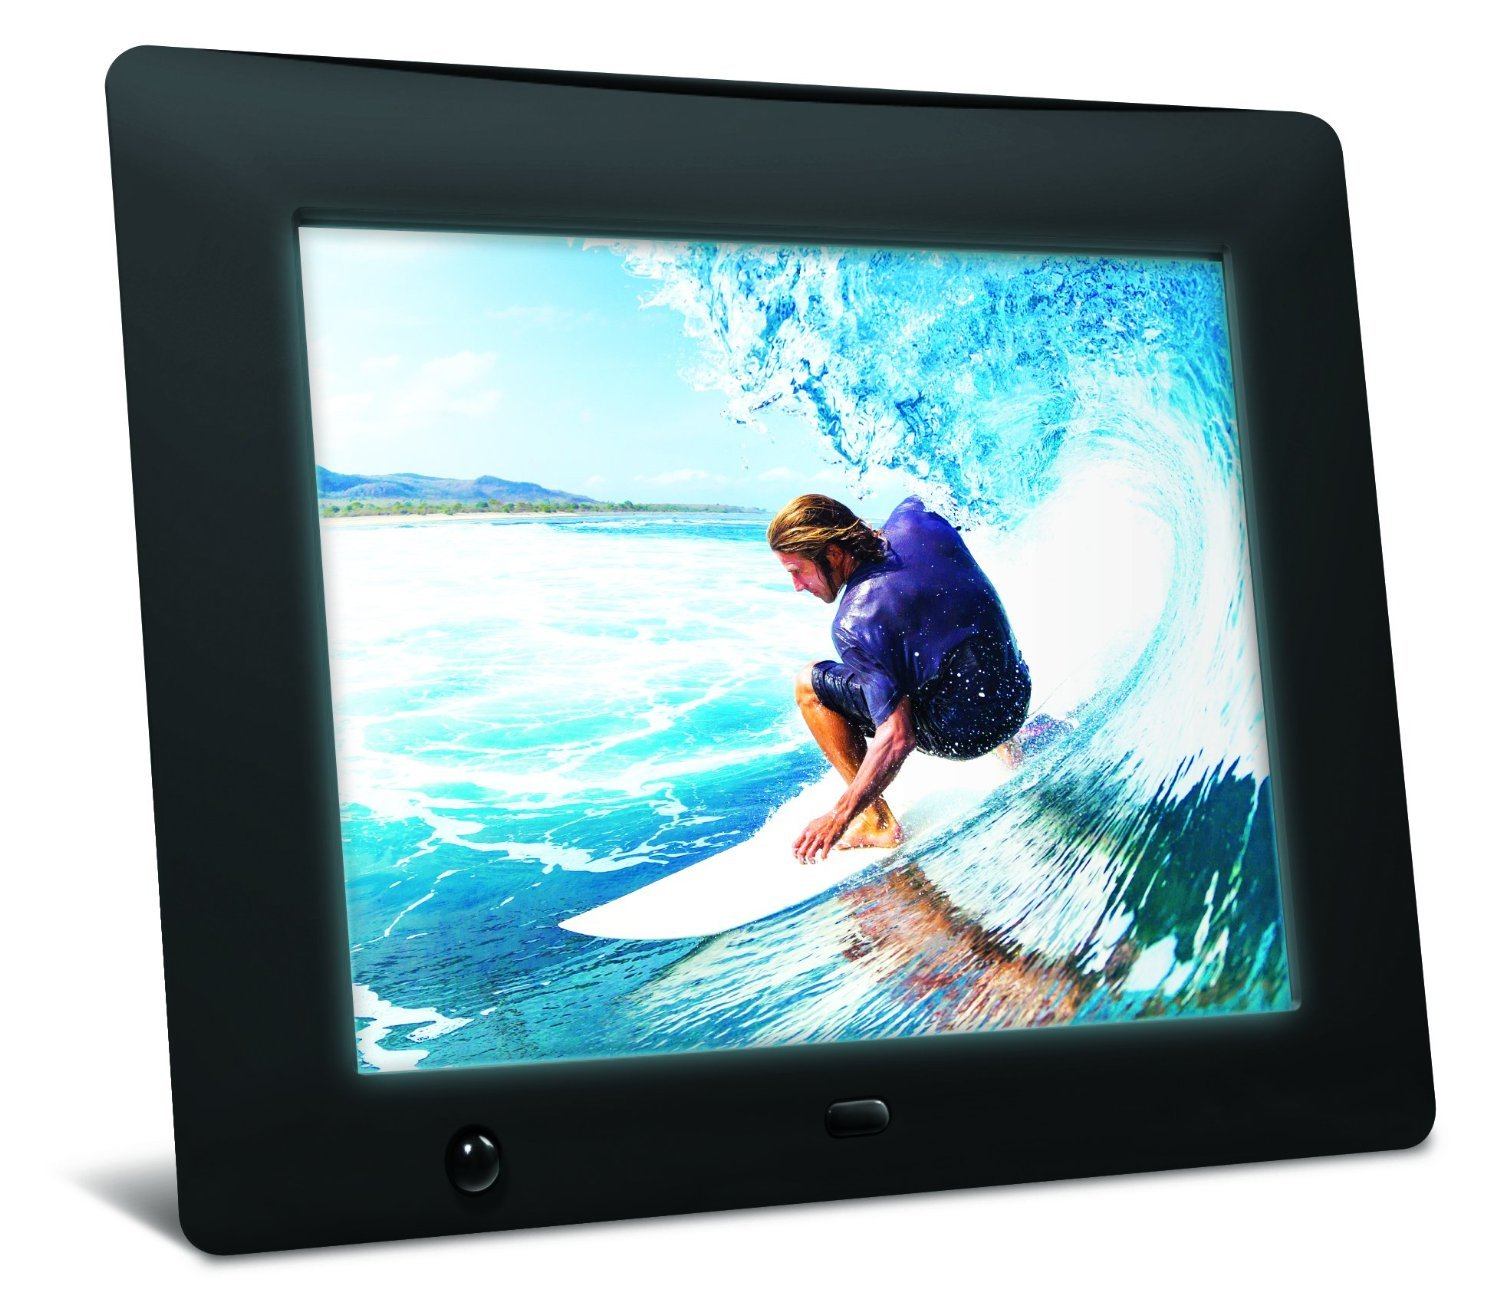 Amazon.com : NIX 8 inch Hi-Res Digital Photo Frame with Motion ...